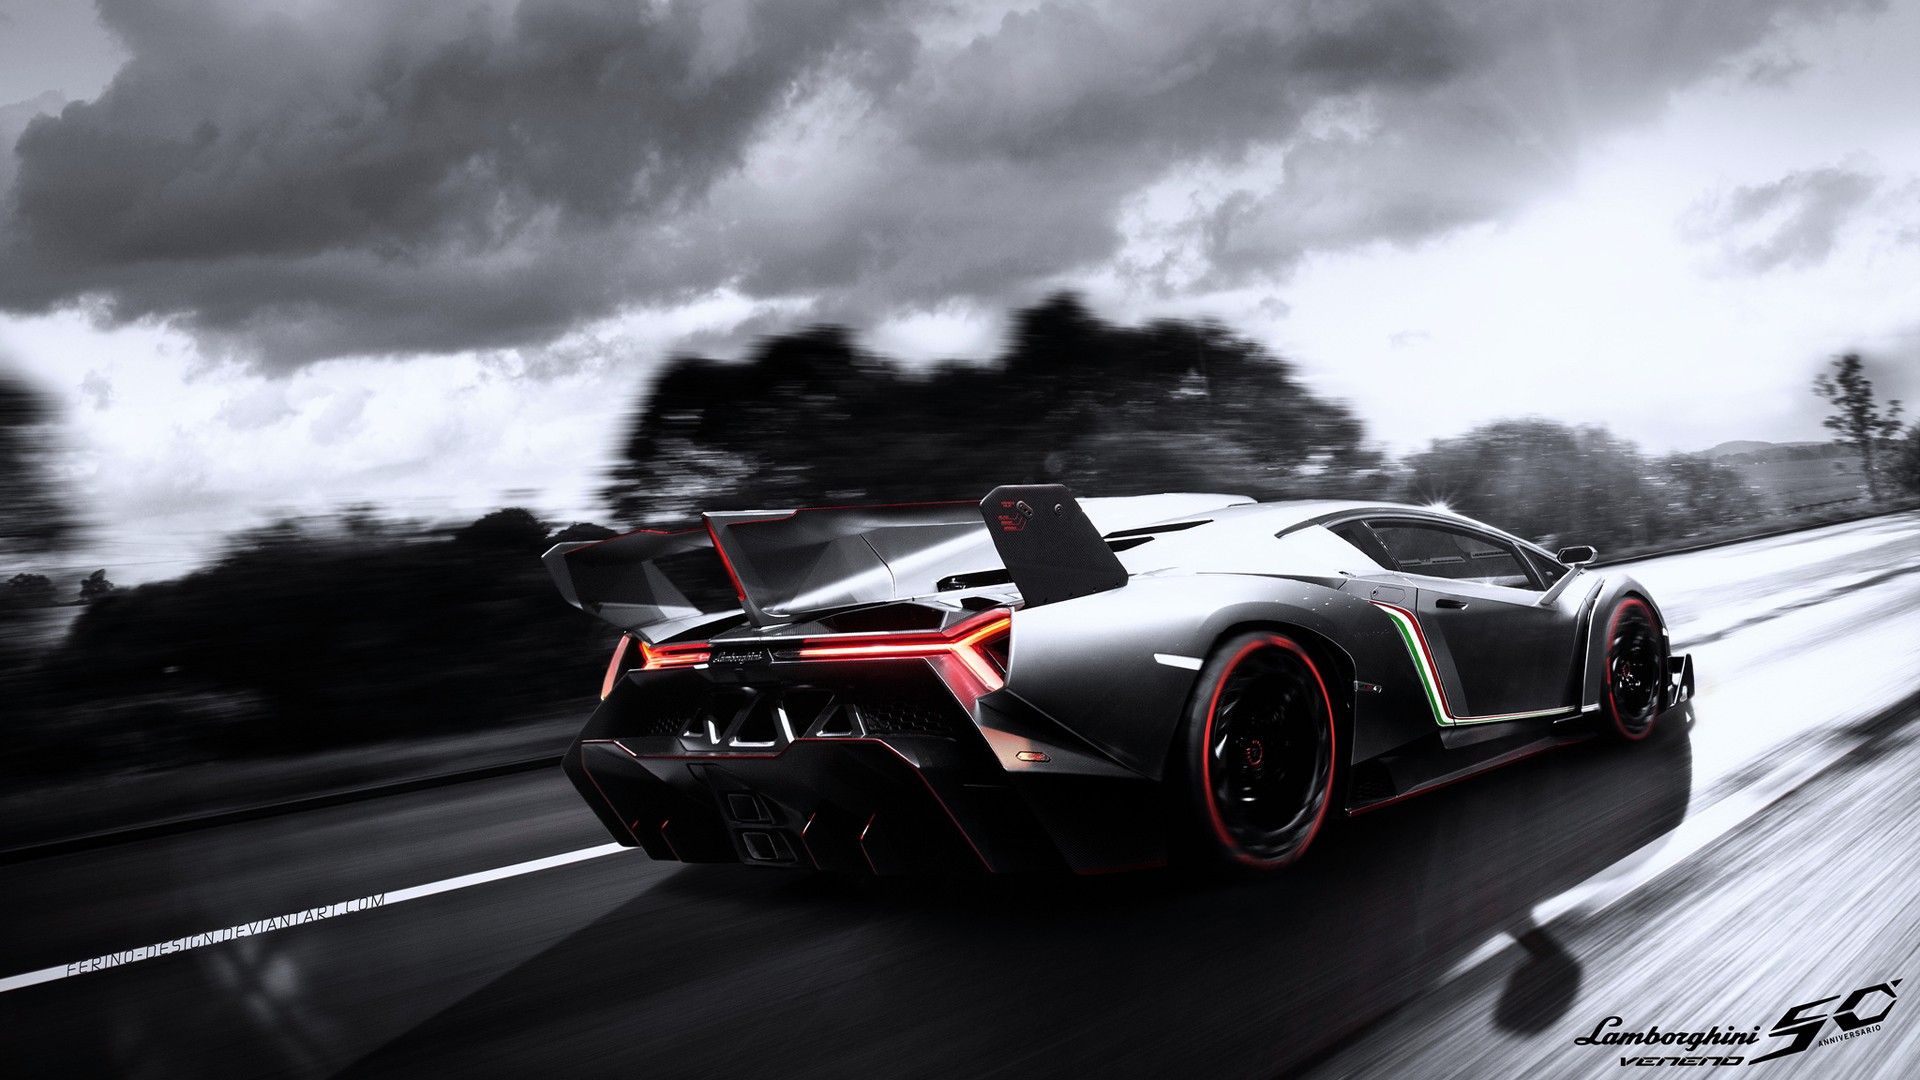 Download Lamborghini Wallpapers In HD For Desktop And Mobile Here 1920x1080